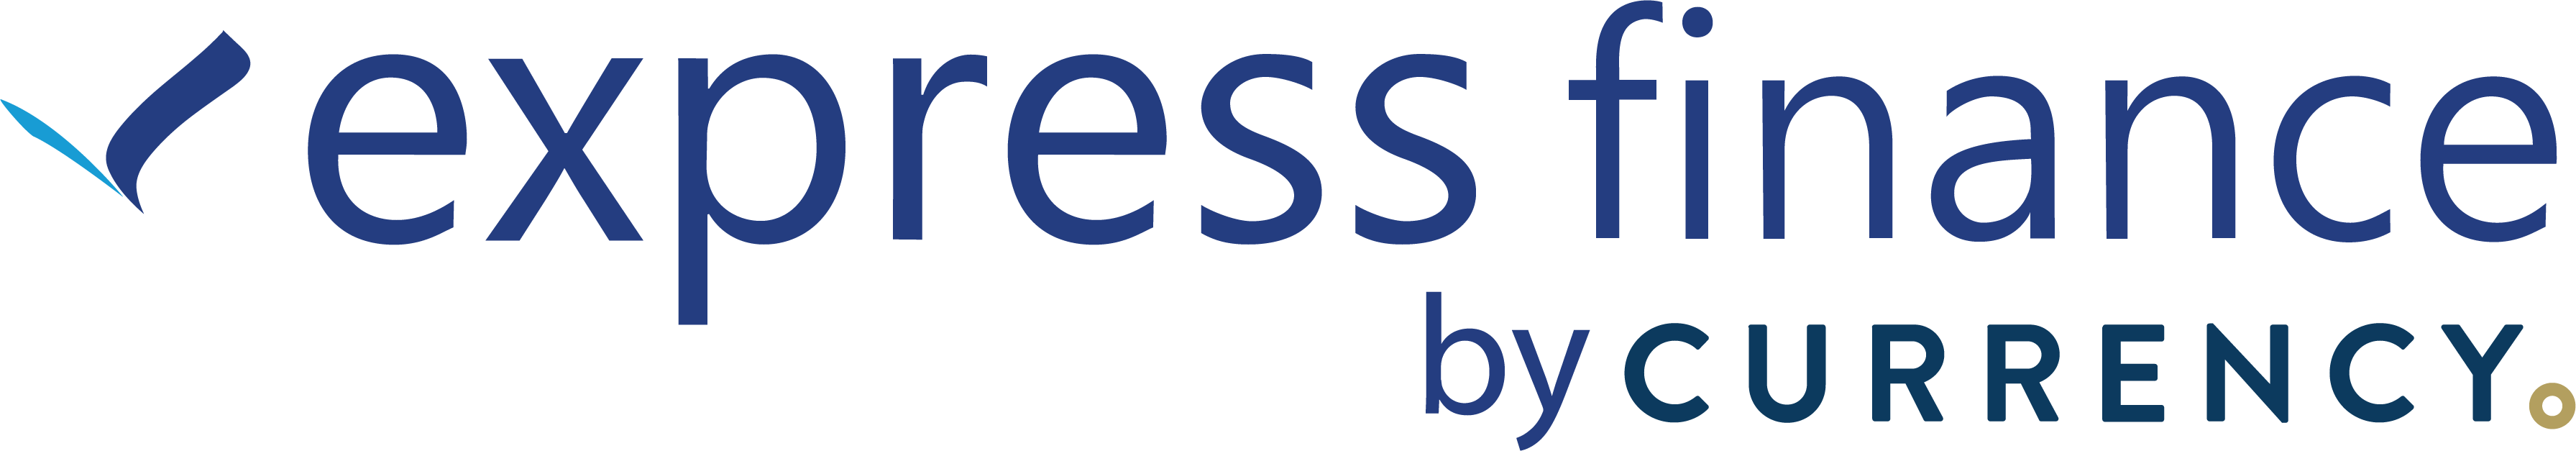 logo-express-finance-color.png